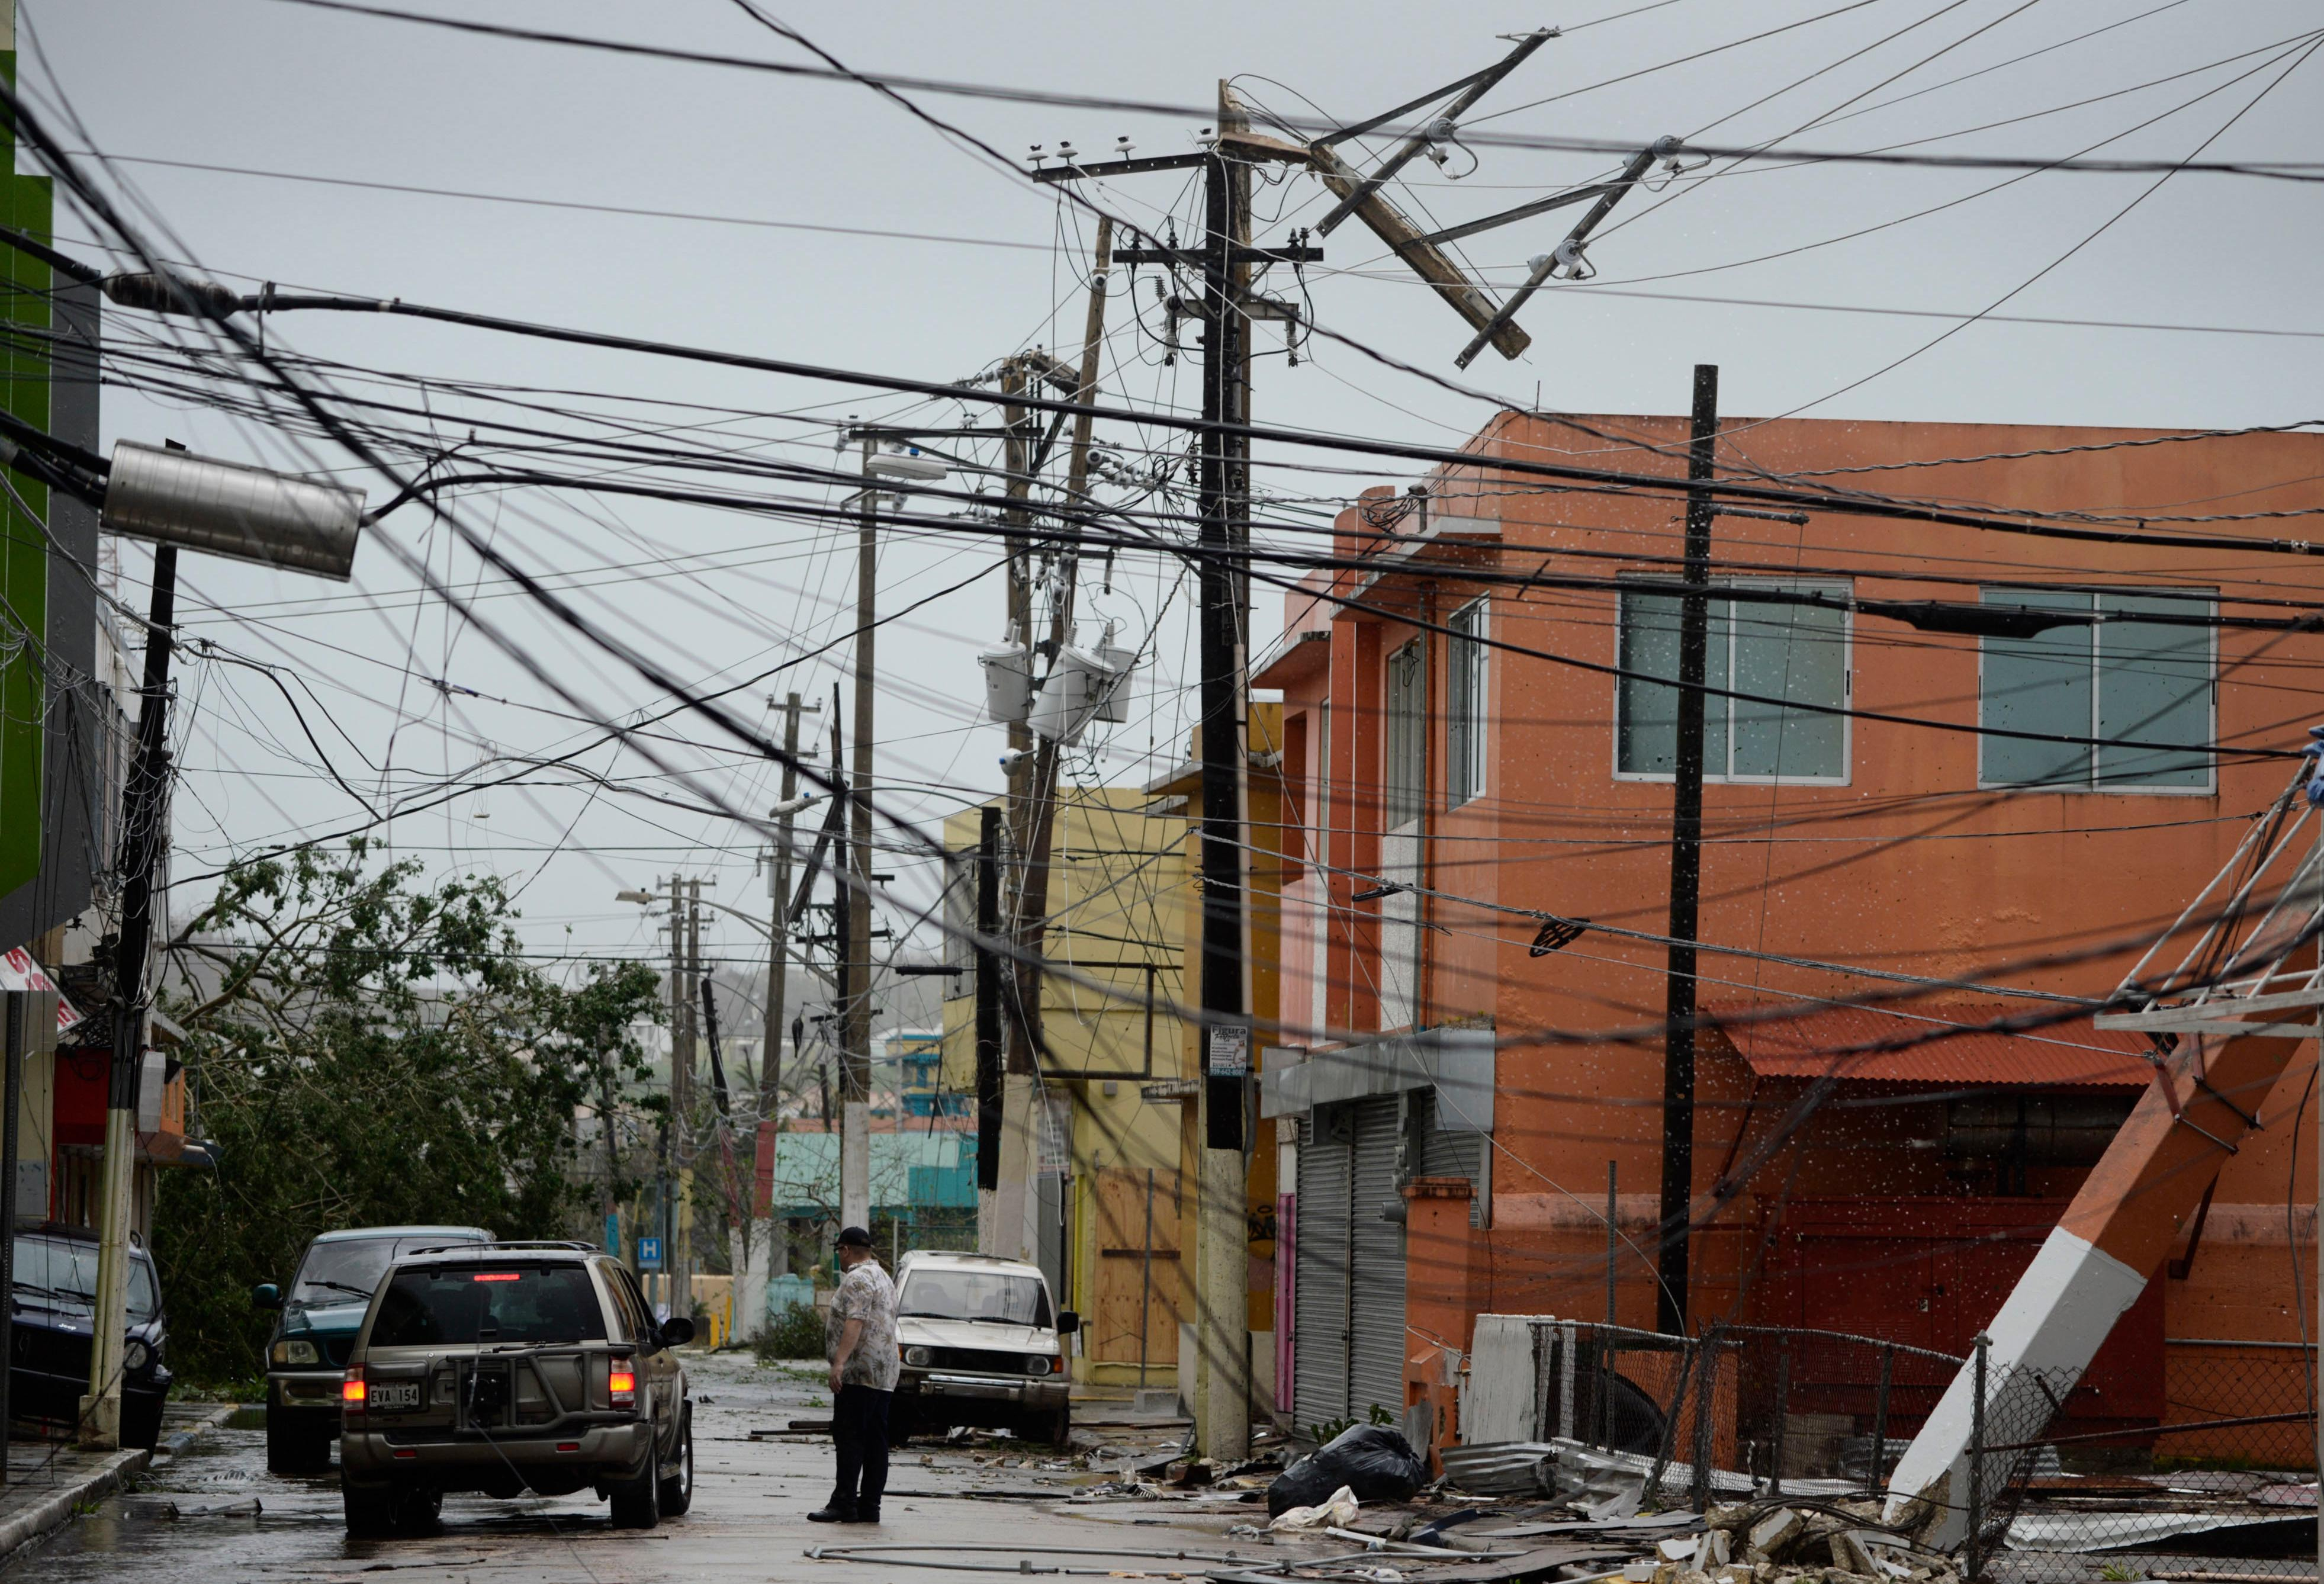 Power lines are down after the impact of Hurricane Maria, which hit the eastern region of the island in Humacao, Puerto Rico, Wednesday, Sept. 20, 2017. (AP Photo/Carlos Giusti)